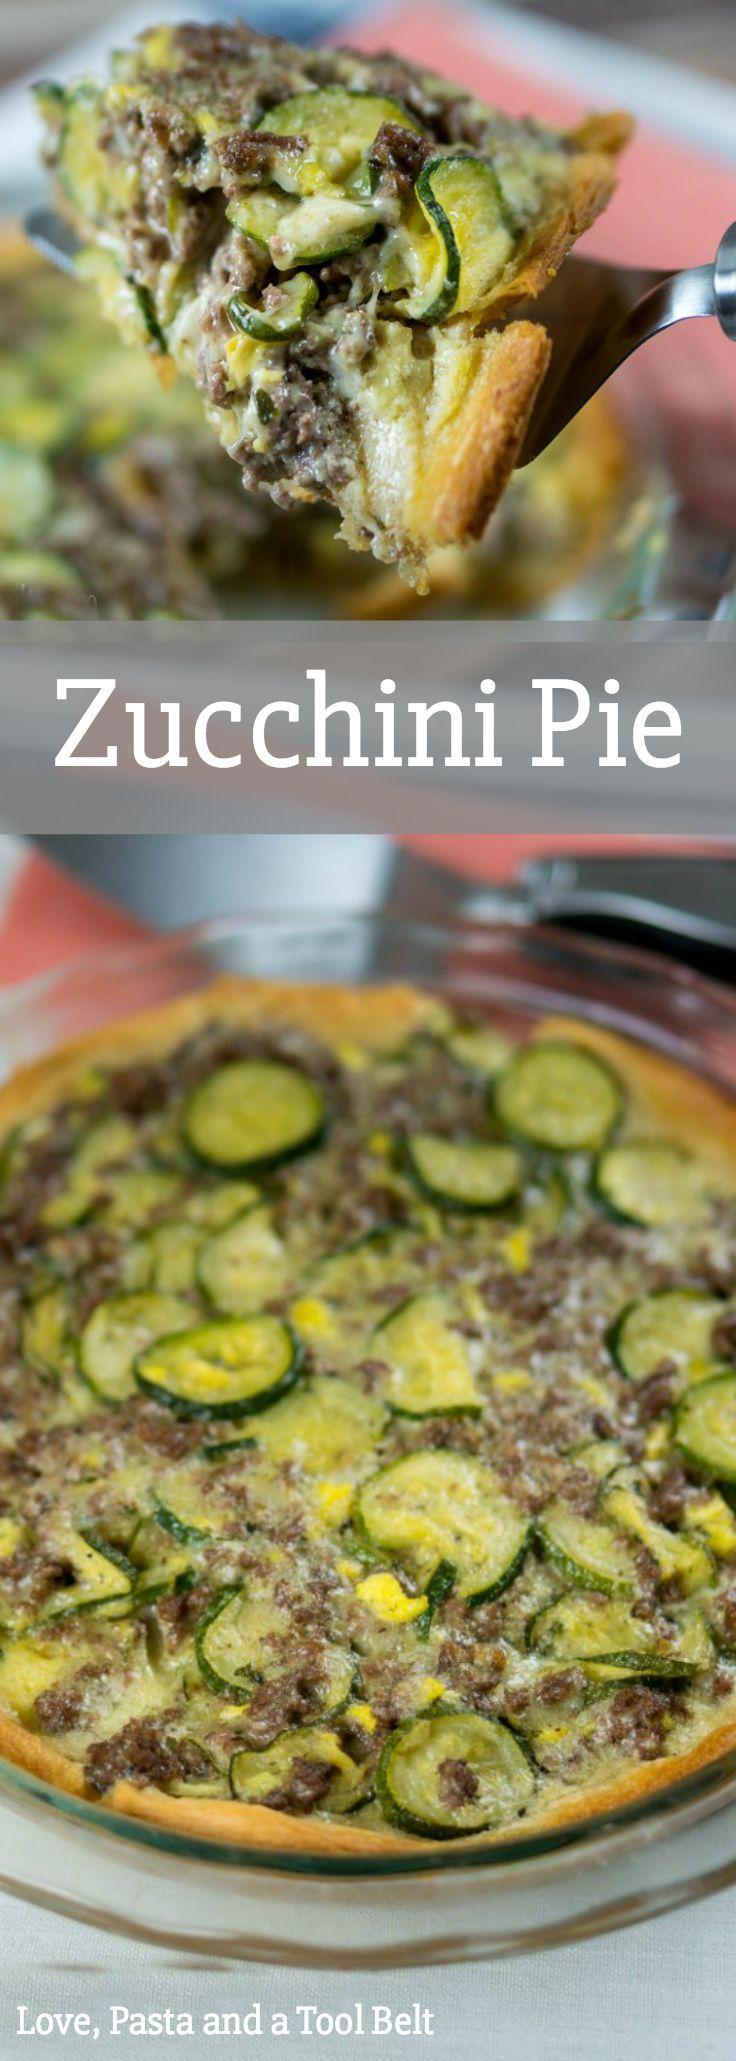 Zucchini Pie - recipes | dinner | ground beef | mozzarella cheese | crescent rolls | main dish | zucchini recipe | pie |  via @LovePastaBlog